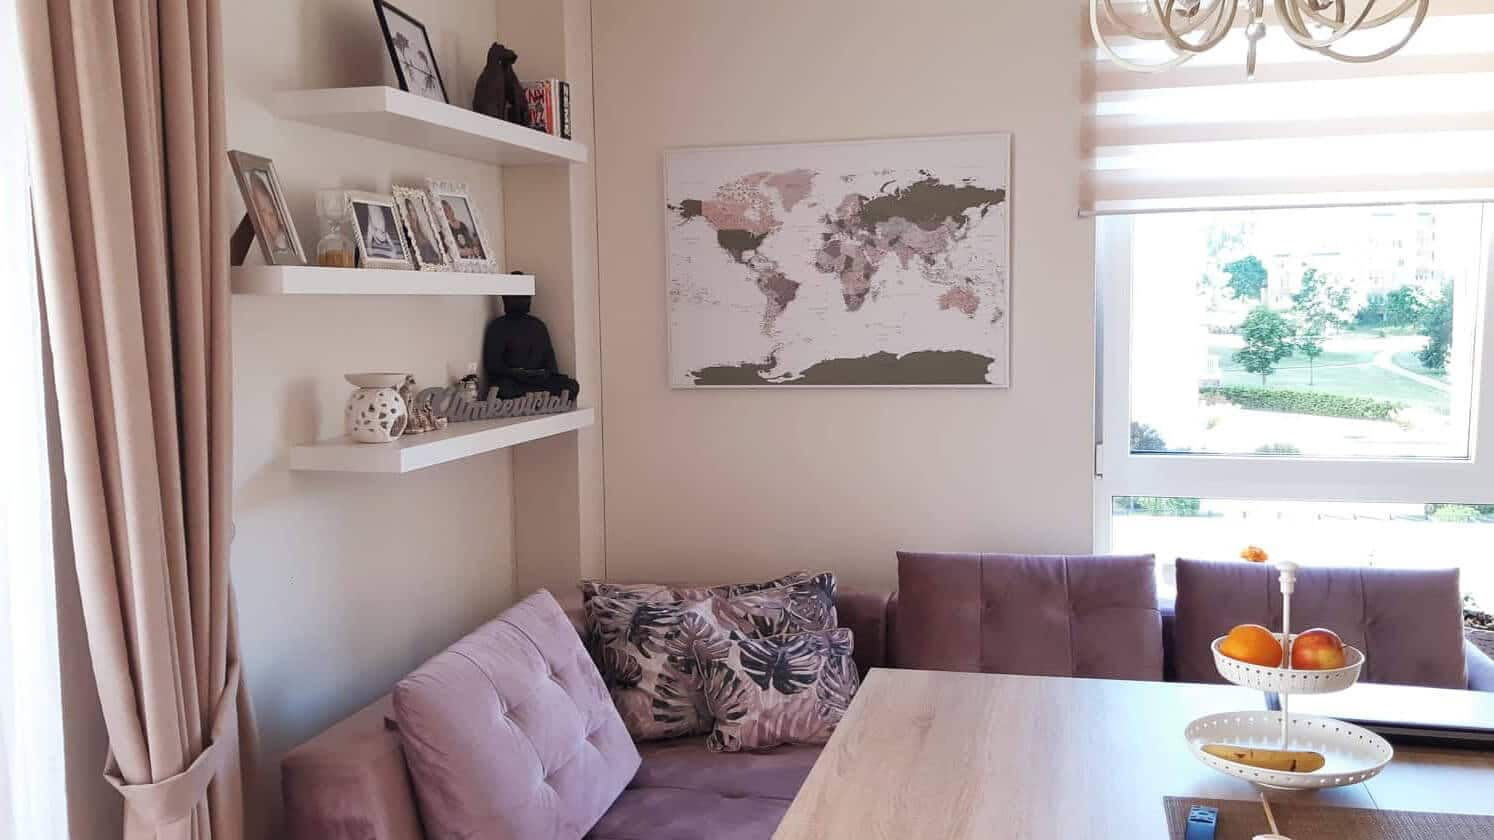 world wall map with pins green